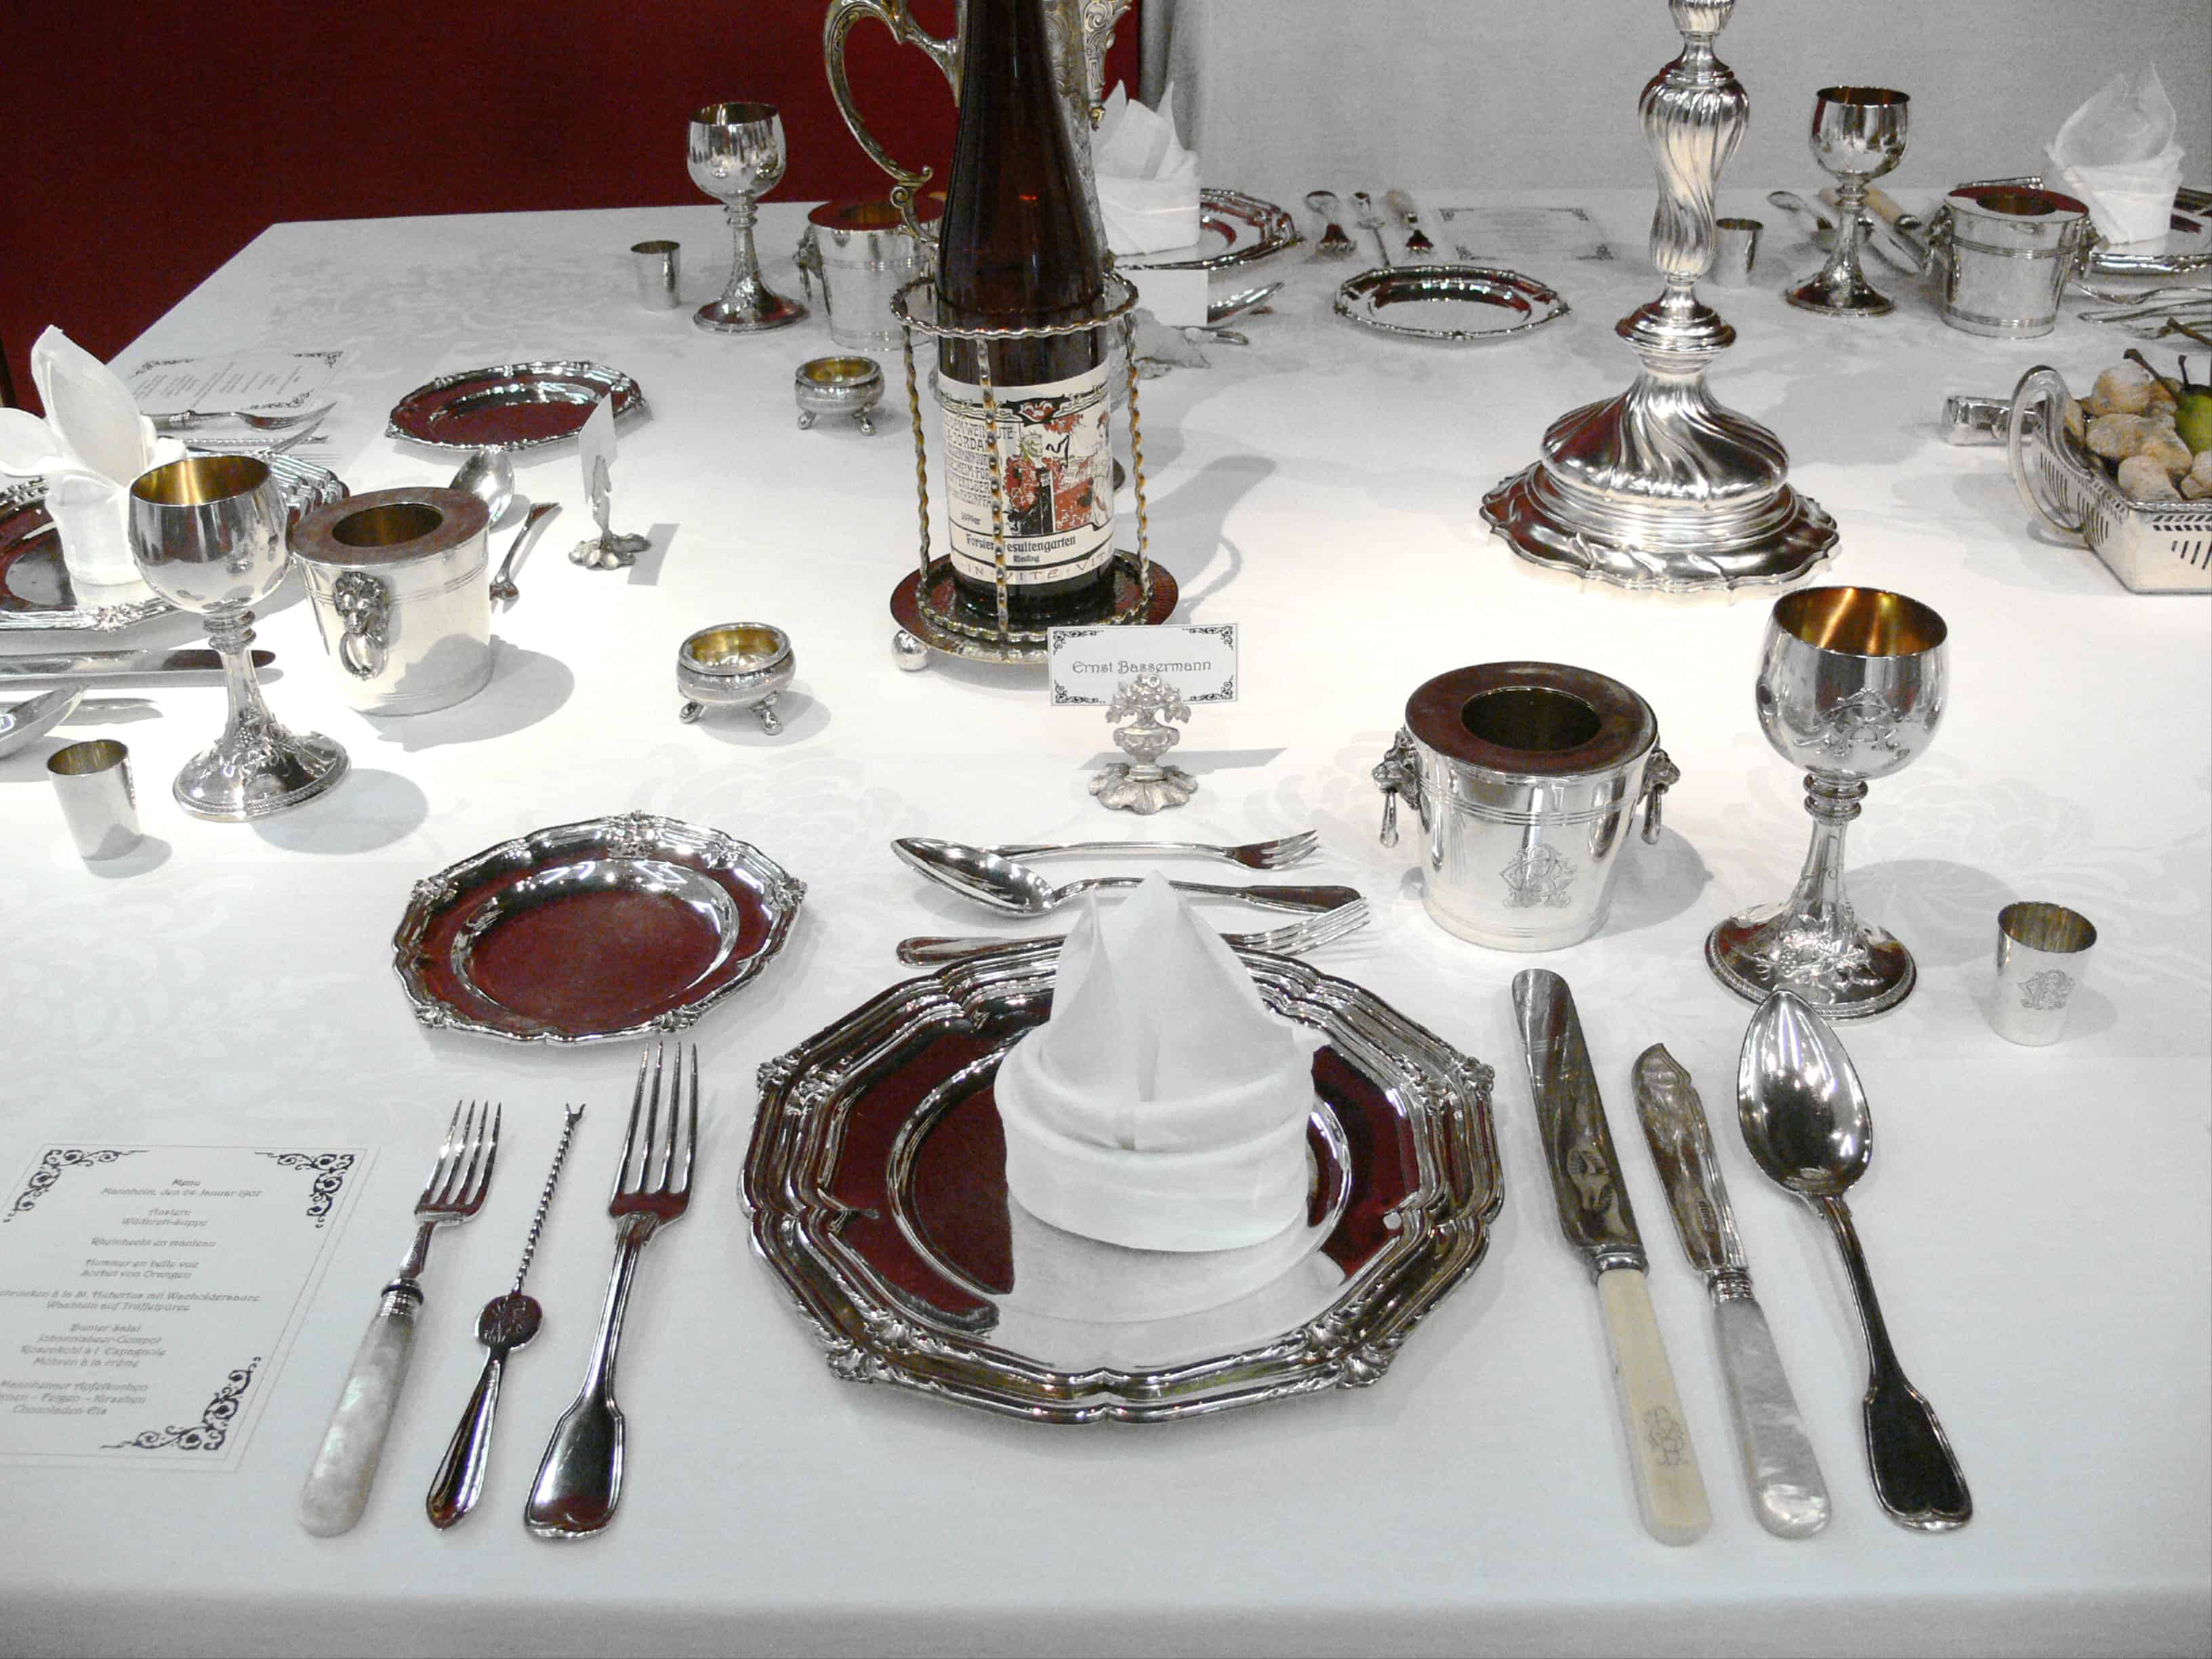 Formal dinner table setting etiquette - The Menu